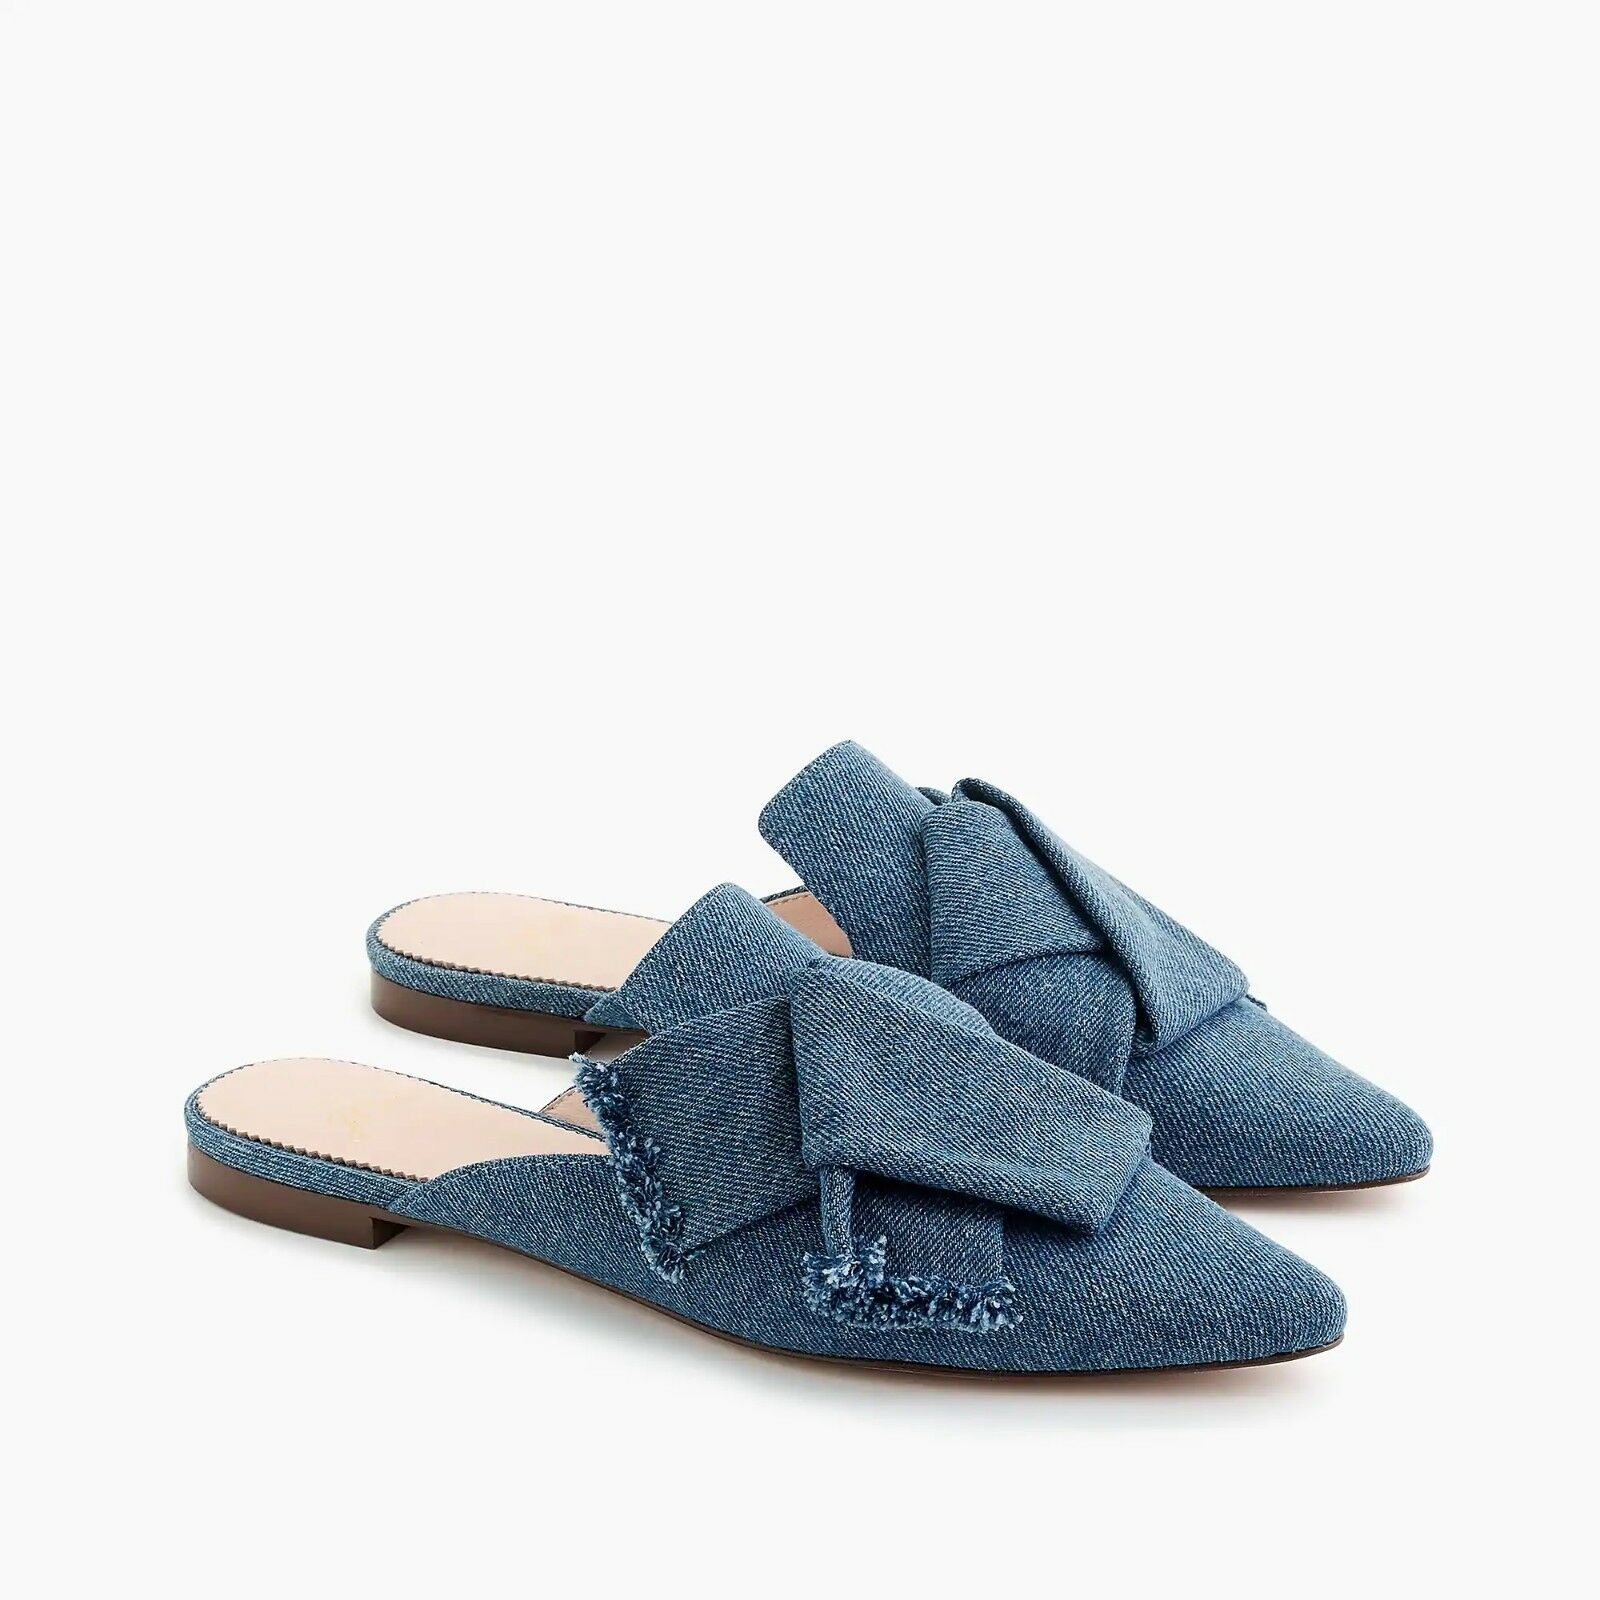 New in Box J. Crew Wouomo Pointed-Toe Slides in Denim - Icy Pool - Dimensione 6.5